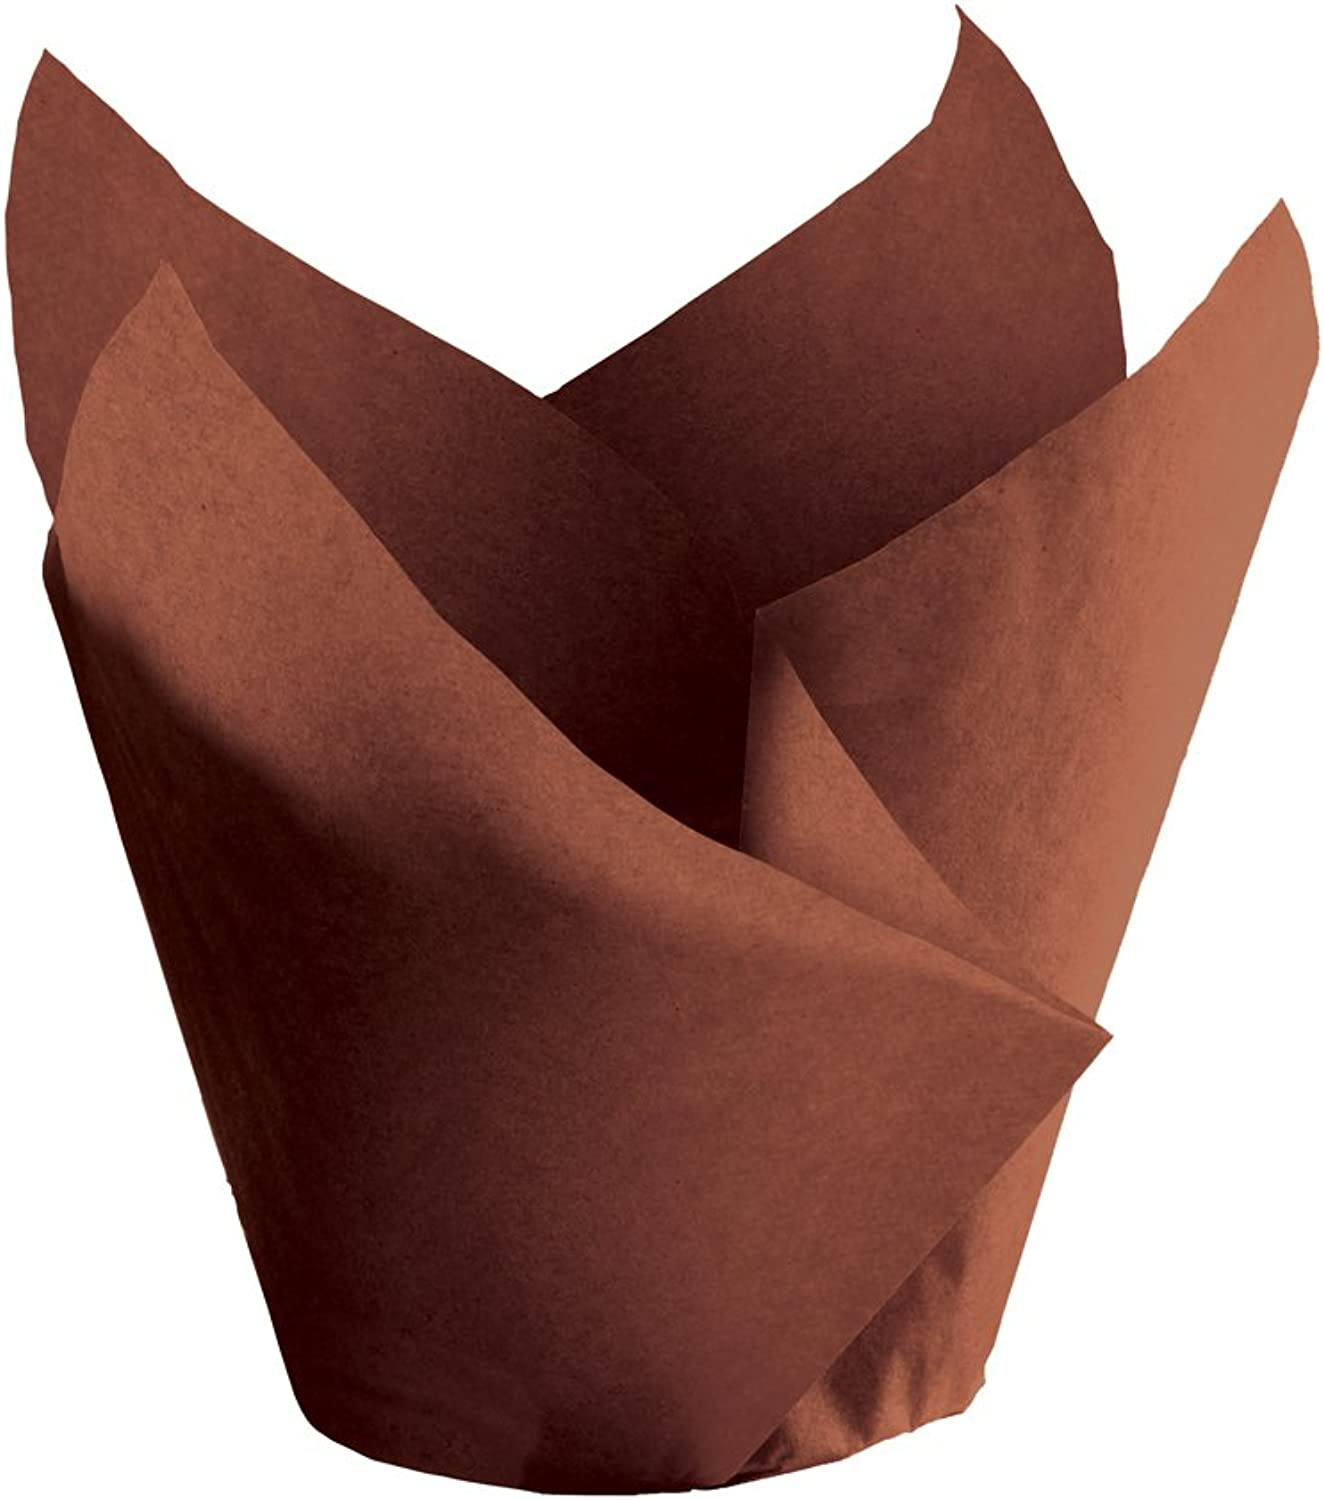 Hoffmaster 611117 Tulip Cup Cupcake Wrapper Baking Cup, 2  Diameter x 3-1 2  Height, Small, Chocolate (Pack of 1000)